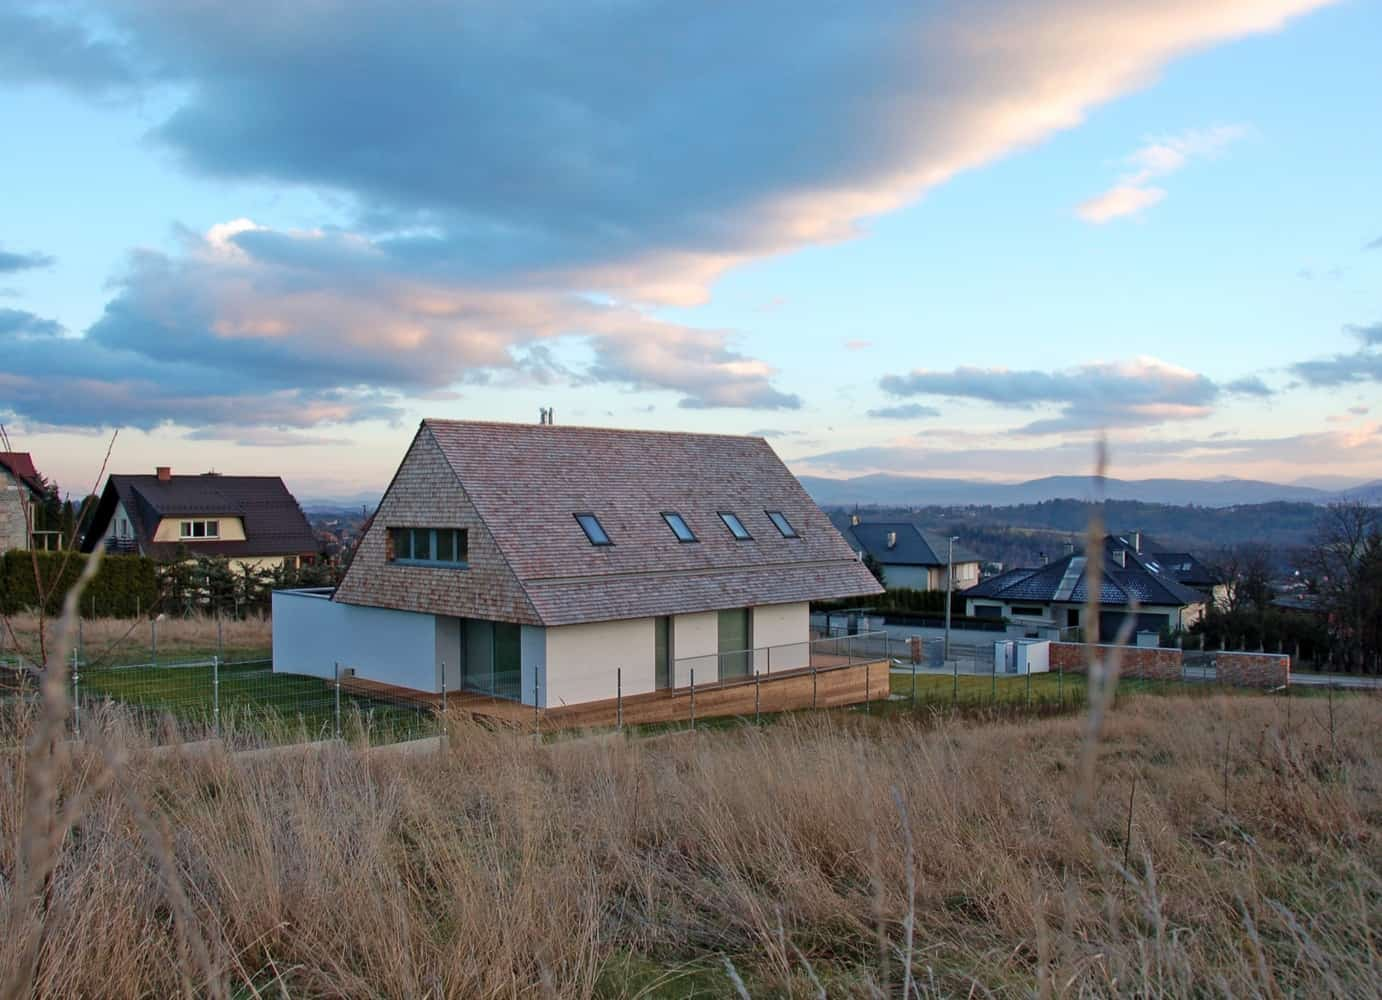 Beautiful Utter Simplicity - House With a View by doomo (10)